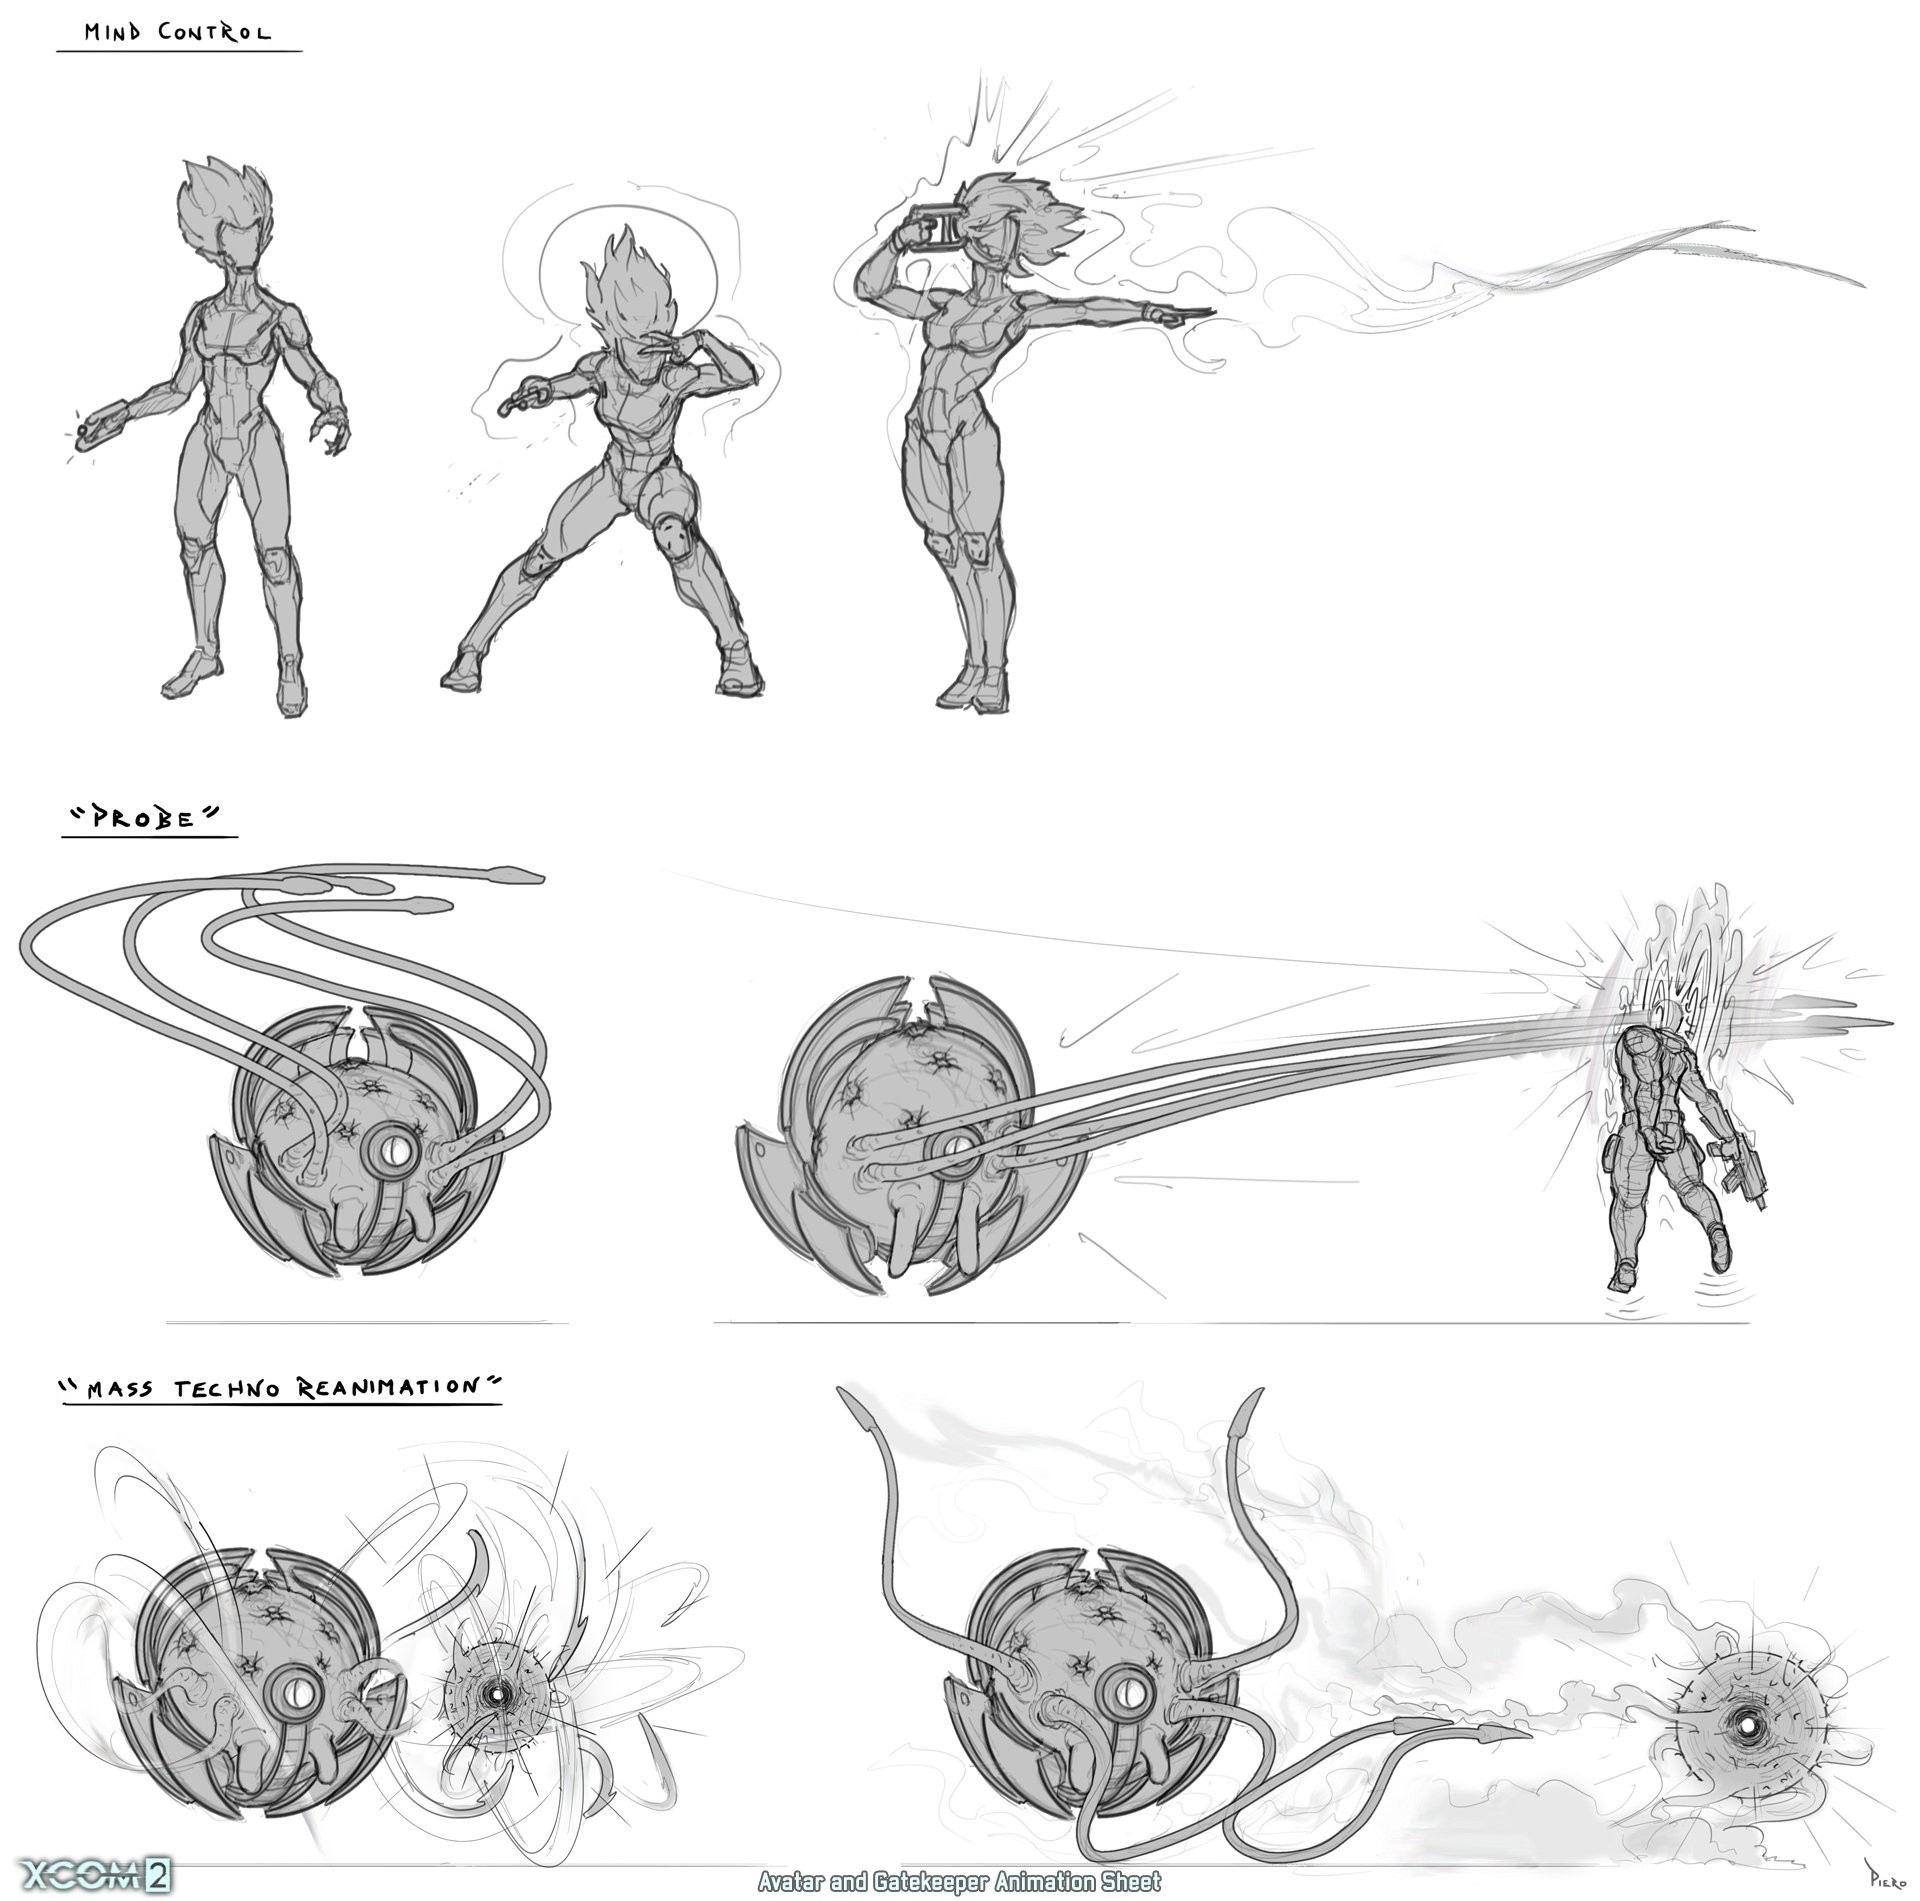 Piero macgowan xcom2 34 psi action sketches piero macgowan